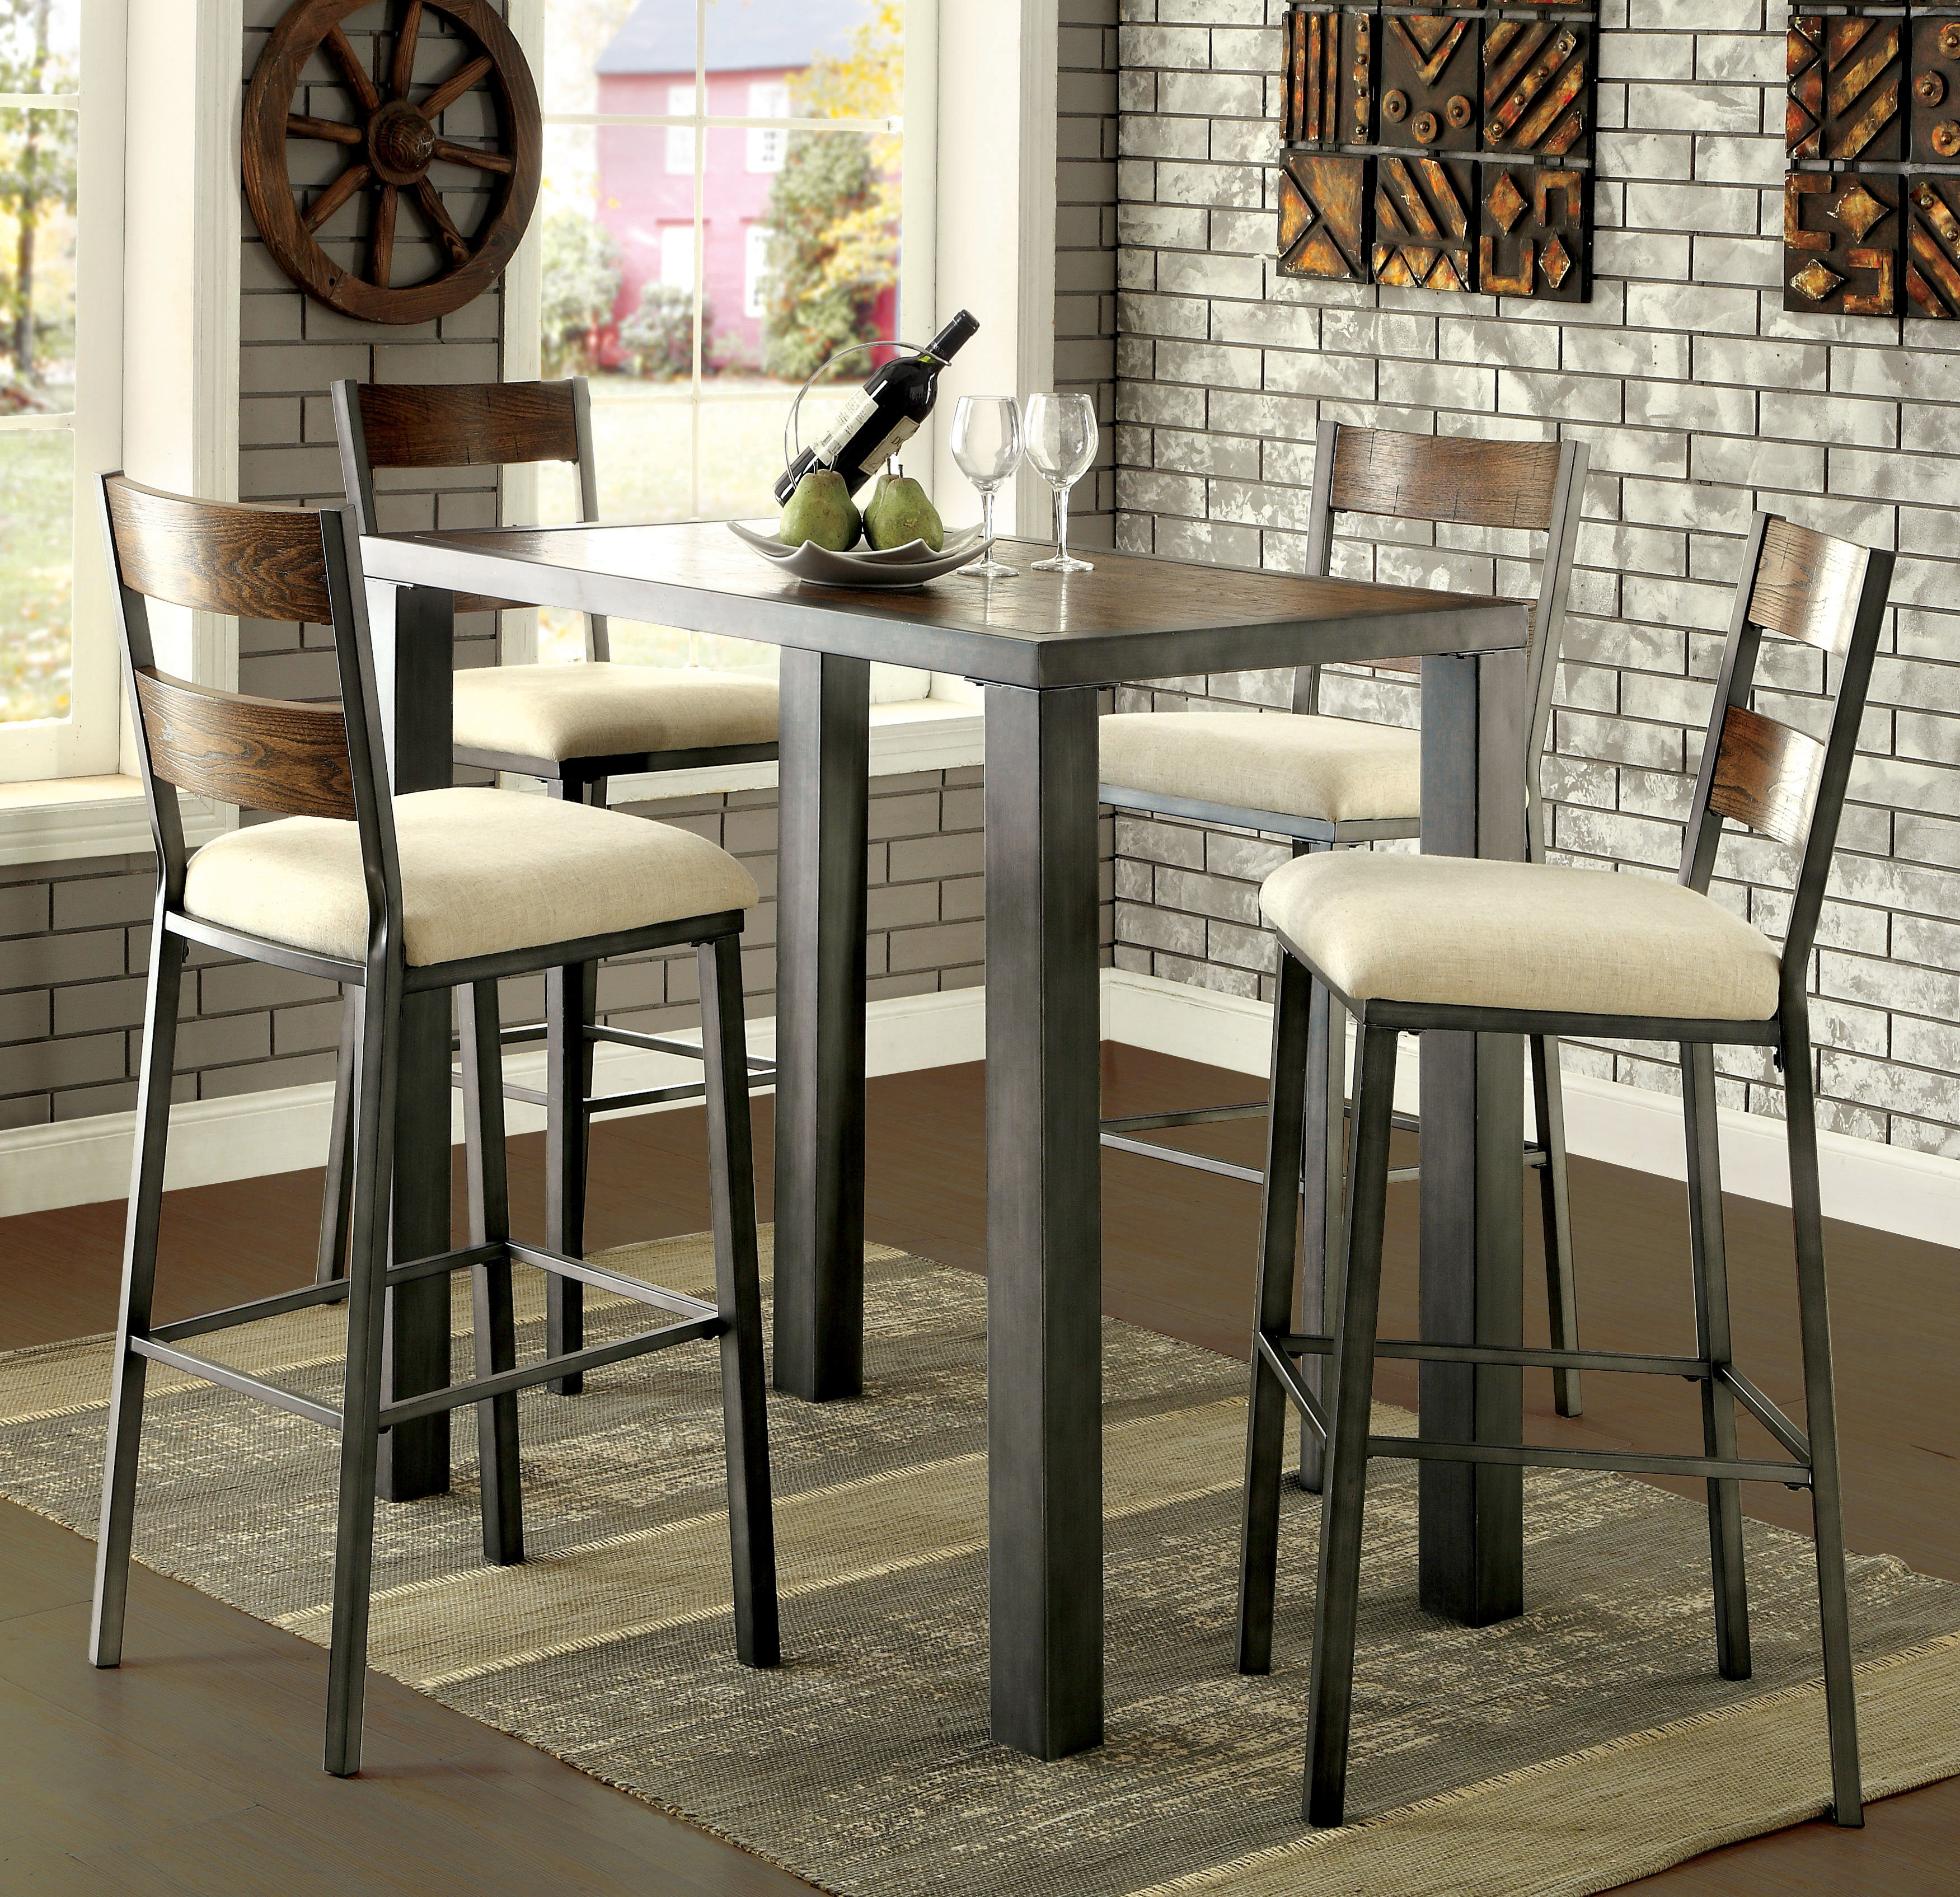 Thurman 5 Piece Pub Table Set Inside Best And Newest Biggs 5 Piece Counter Height Solid Wood Dining Sets (Set Of 5) (View 3 of 20)